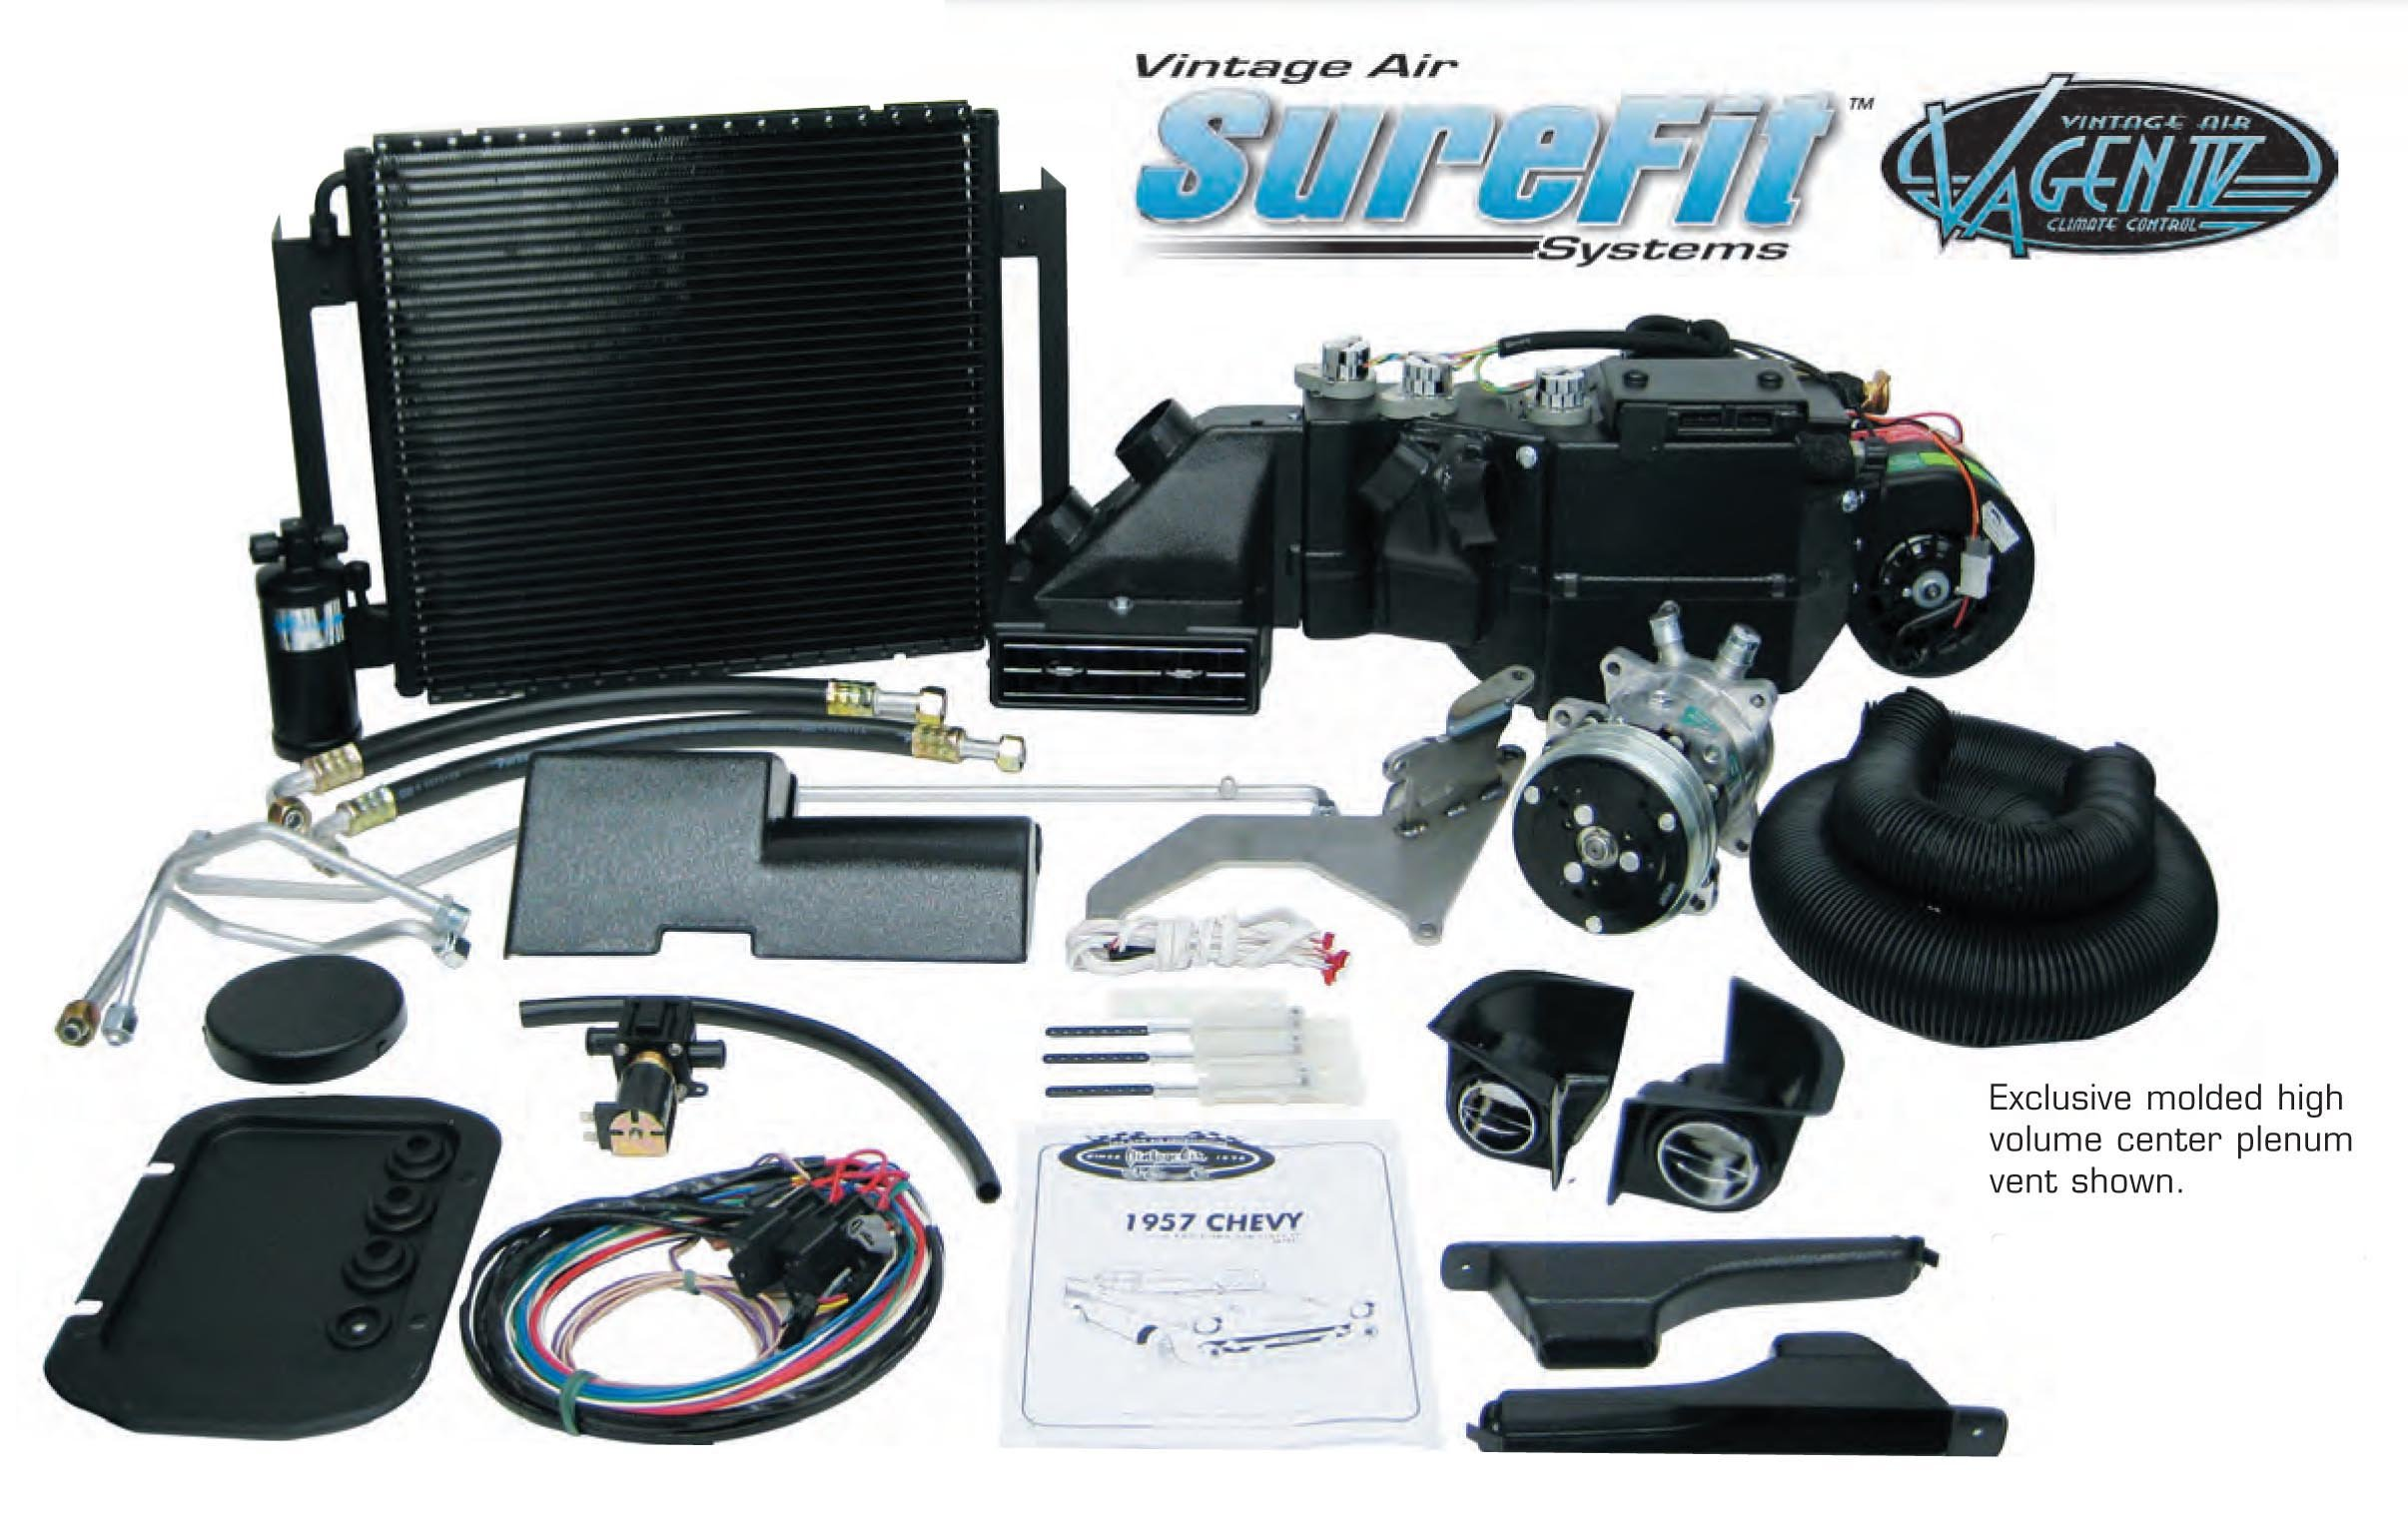 Vintage Air 96155-PCU Air Conditioning Complete Kit (55-56Chevy)